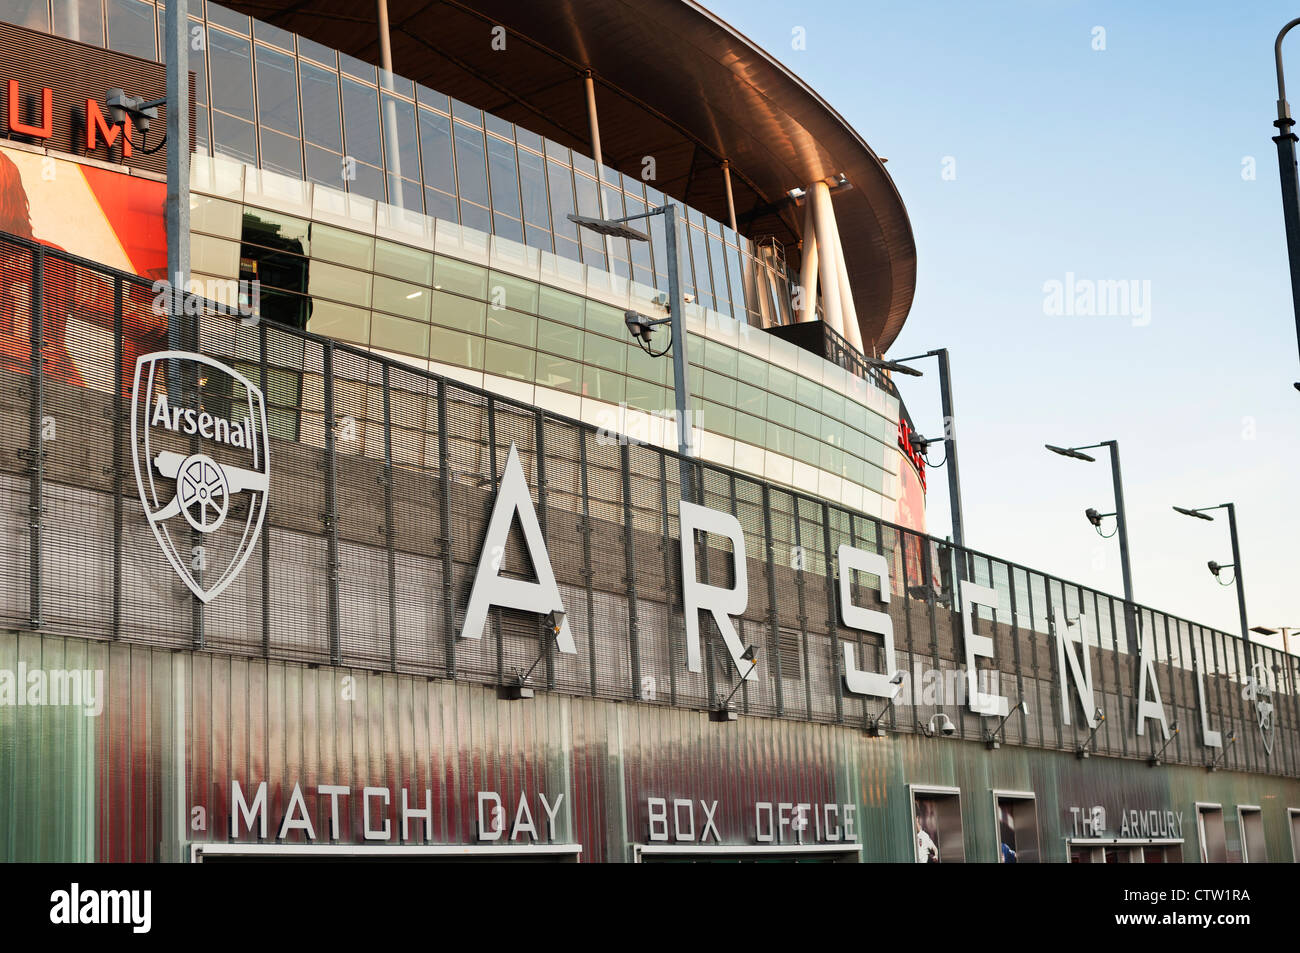 The facade of the Arsenal Emirates football Stadum in Highbury. - Stock Image